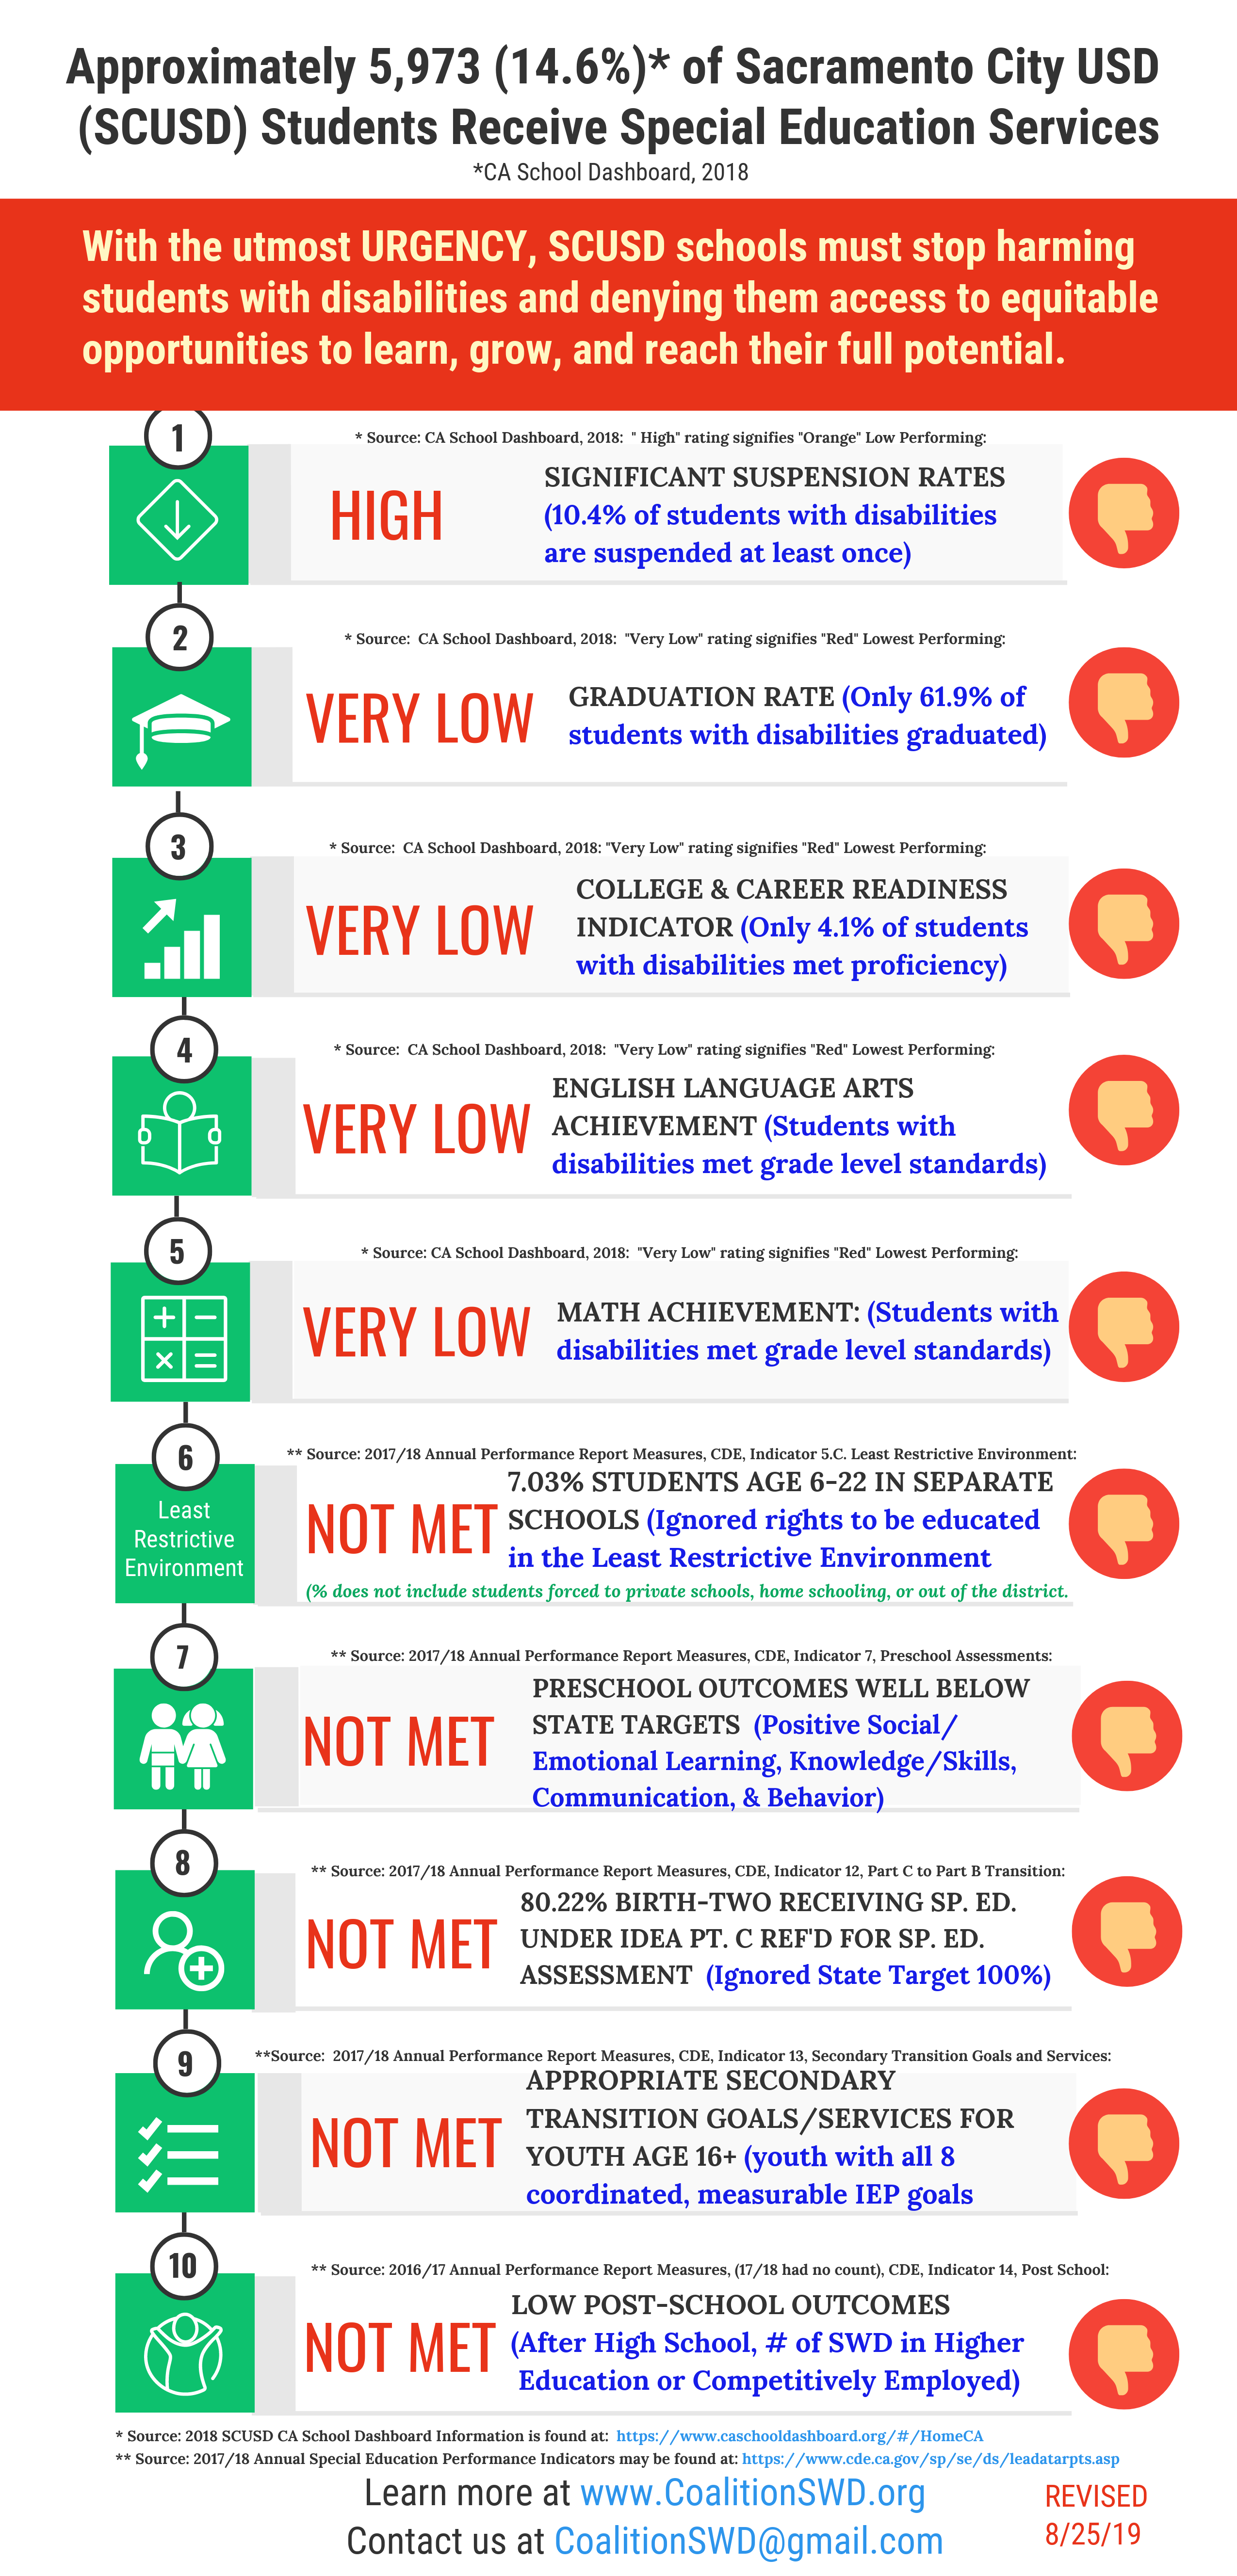 This infographic was prepared by CSWD gathering sources from the State Dashboard and Special Education Division of the CA Dept. of Education. Approximately 5,973 (14.6%)* of Sacramento City USD (SCUSD) Students Receive Special Education Services. SIGNIFICANT SUSPENSION RATES (10.4% of students with disabilities are suspended at least once). GRADUATION RATE (Only 61.9% of students with disabilities graduated). COLLEGE & CAREER READINESS INDICATOR (Only 4.1% of students with disabilities met proficiency). ENGLISH LANGUAGE ARTS ACHIEVEMENT (Students with disabilities met grade level standards). MATH ACHIEVEMENT: (Students with disabilities met grade level standards). 7.03% STUDENTS AGE 6-22 IN SEPARATE SCHOOLS (Ignored rights to be educated in the Least Restrictive Environment. PRESCHOOL OUTCOMES WELL BELOW STATE TARGETS (Positive Social/ Emotional Learning, Knowledge/Skills, Communication, & Behavior). 80.22% BIRTH-TWO RECEIVING SP. ED. UNDER IDEA PT. C REF'D FOR SP. ED. ASSESSMENT (Ignored State Target 100%). APPROPRIATE SECONDARY TRANSITION GOALS/SERVICES FOR YOUTH AGE 16+ (youth with all 8 coordinated, measurable IEP goals). LOW POST-SCHOOL OUTCOMES (After High School, # of SWD in Higher Education or Competitively Employed). * Source: 2018 SCUSD CA School Dashboard Information is found at: https://www.caschooldashboard.org/#/HomeCA ** Source: 2017/18 Annual Special Education Performance Indicators may be found at: https://www.cde.ca.gov/sp/se/ds/leadatarpts.asp. SCUSD Outcomes for Students with Disabilities - 8-25-19. With the utmost URGENCY, SCUSD schools must stop harming students with disabilities and denying them access to equitable opportunities to learn, grow, and reach their full potential.